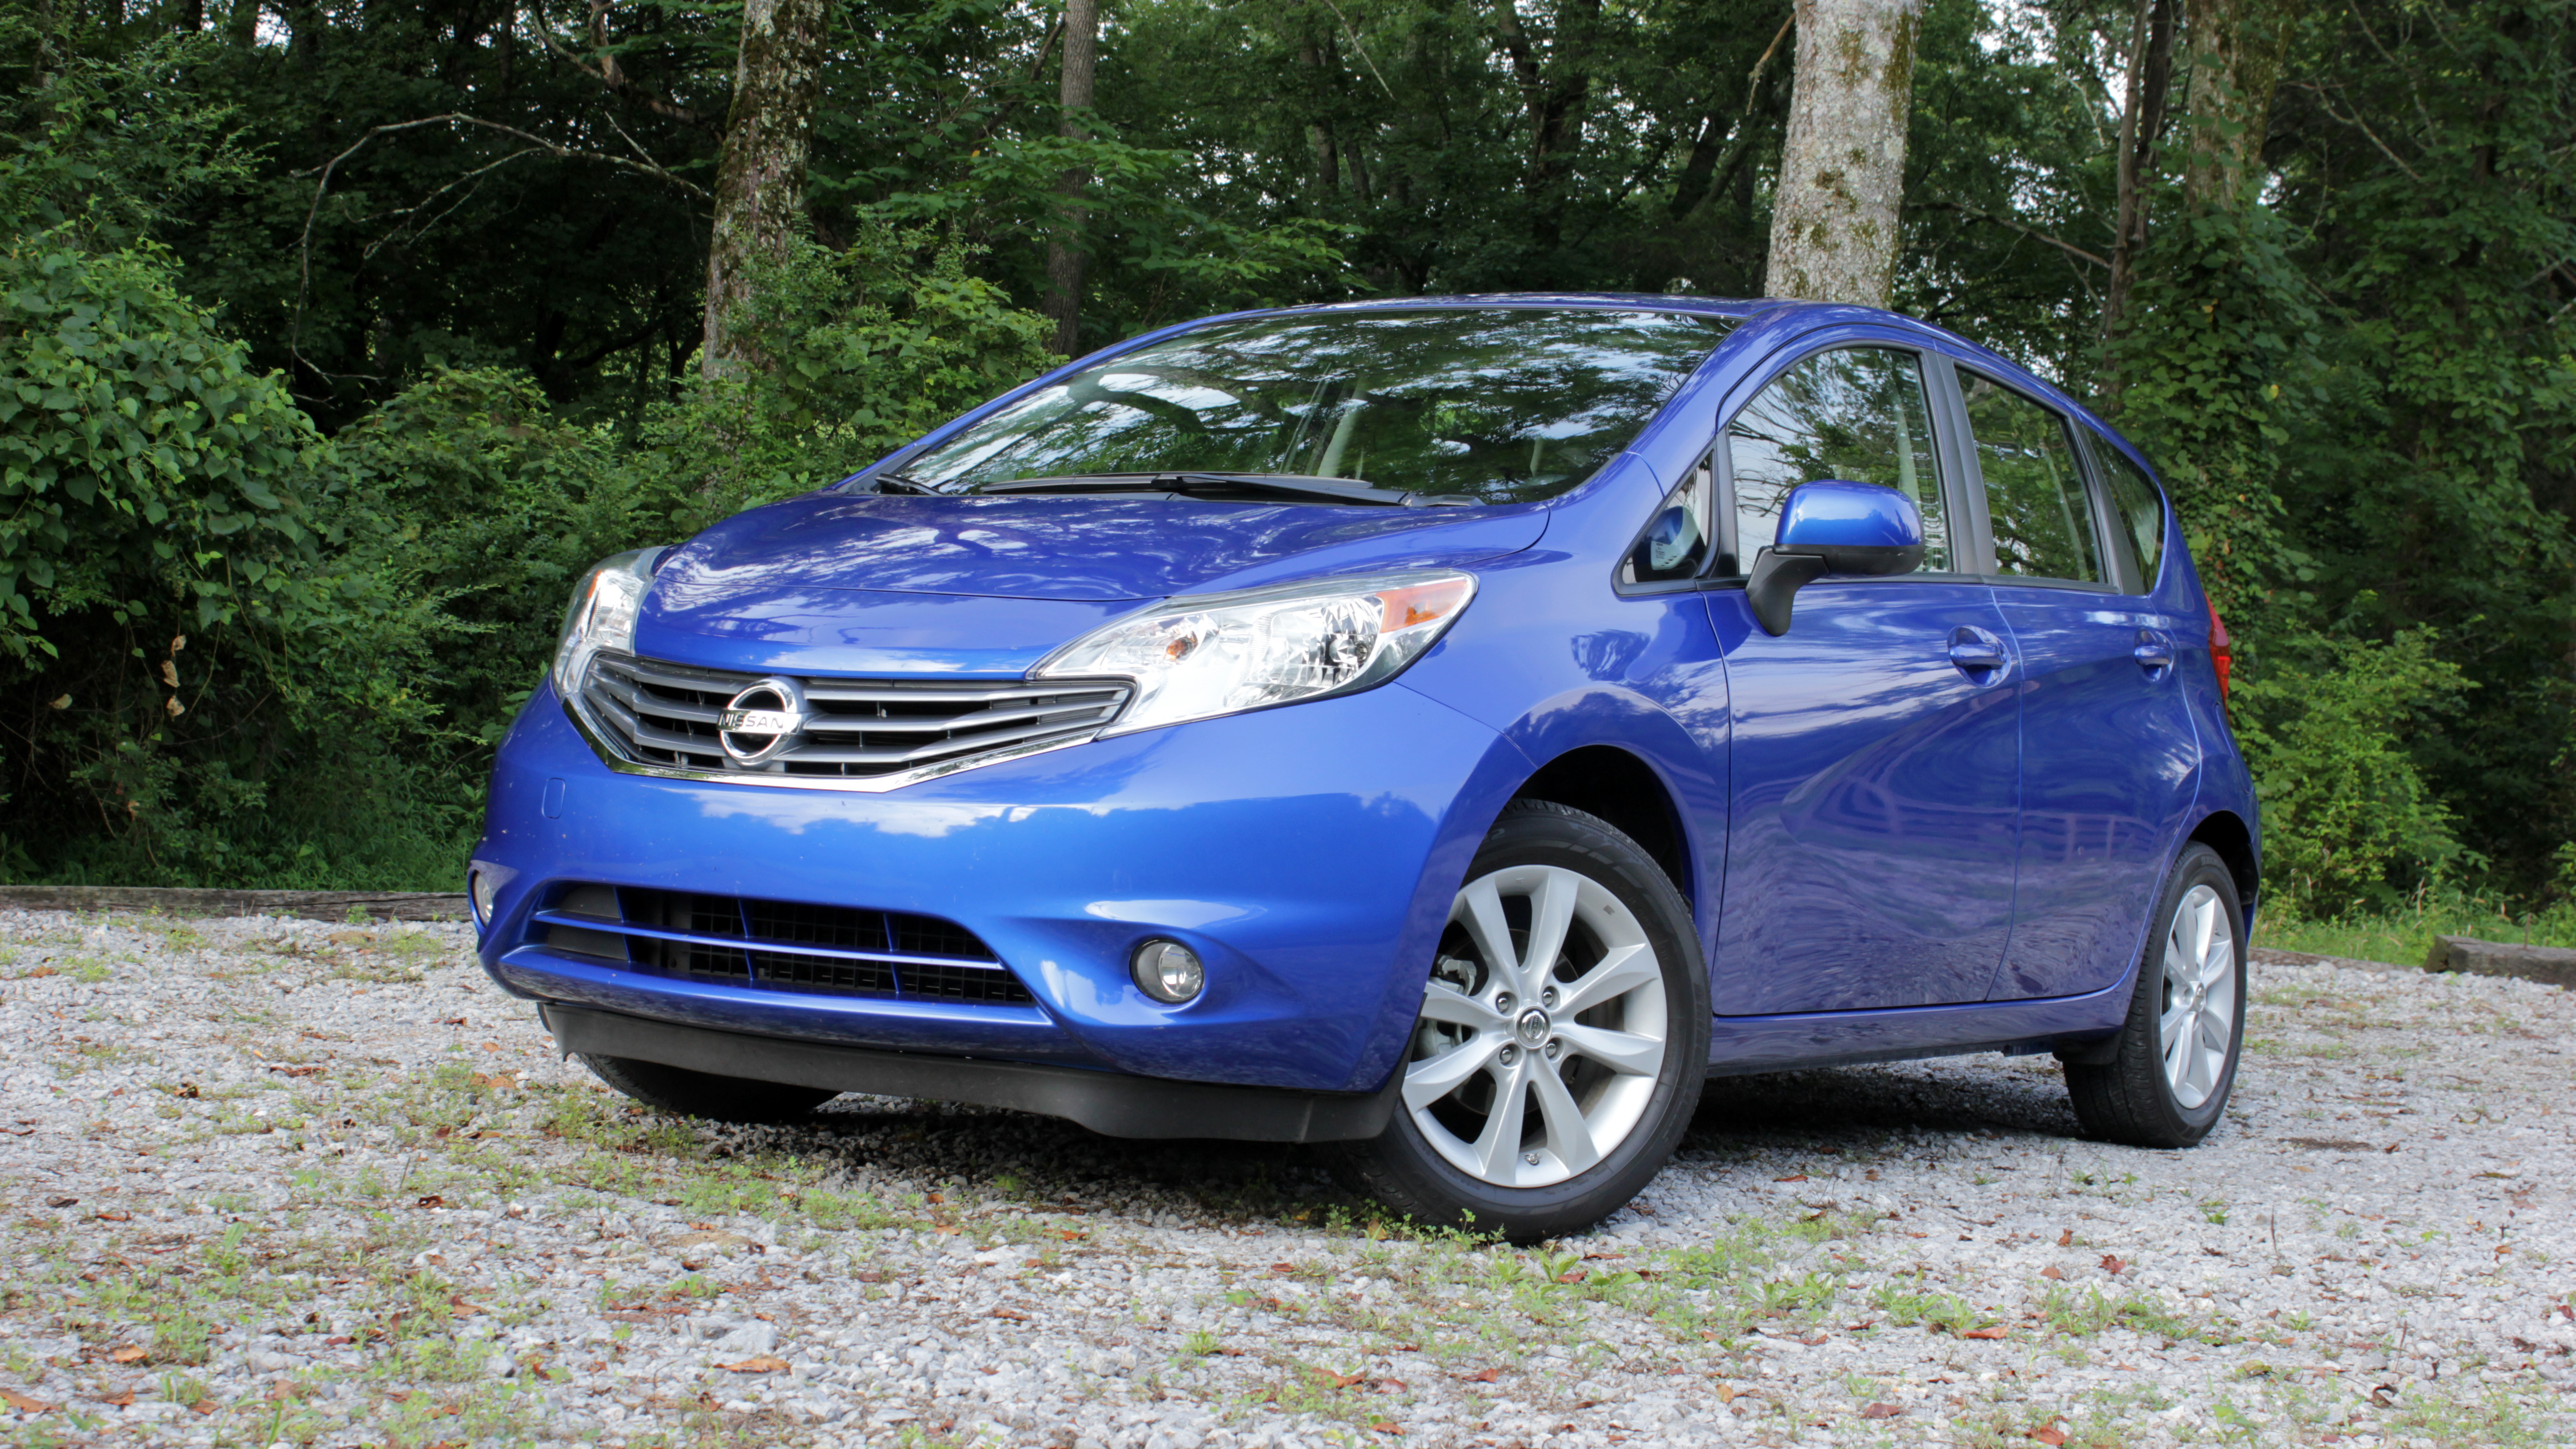 2014 nissan versa note review driven top speed. Black Bedroom Furniture Sets. Home Design Ideas